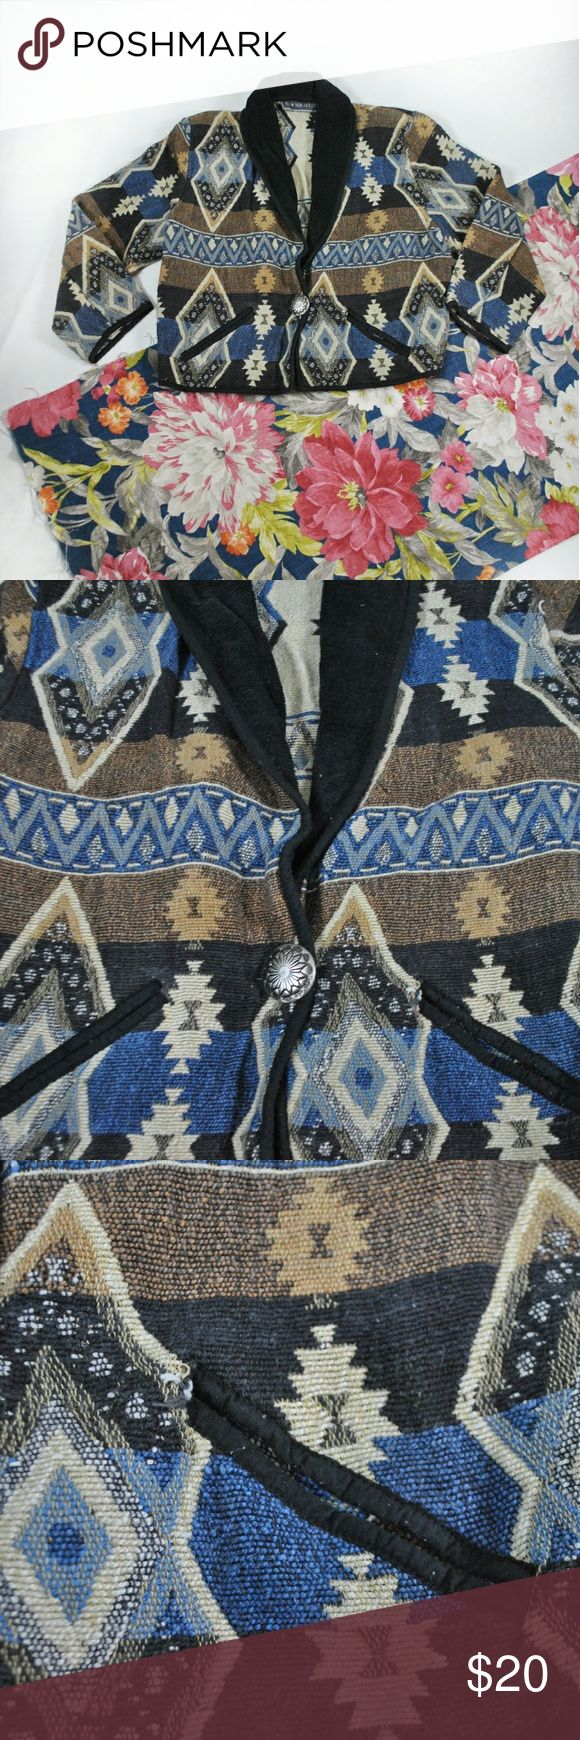 Vintage Southwestern Tapestry Jacket New Direction XL  Previously loved, with no holes or stains but there is some fraying on the pocket edge as shown. Jackets & Coats